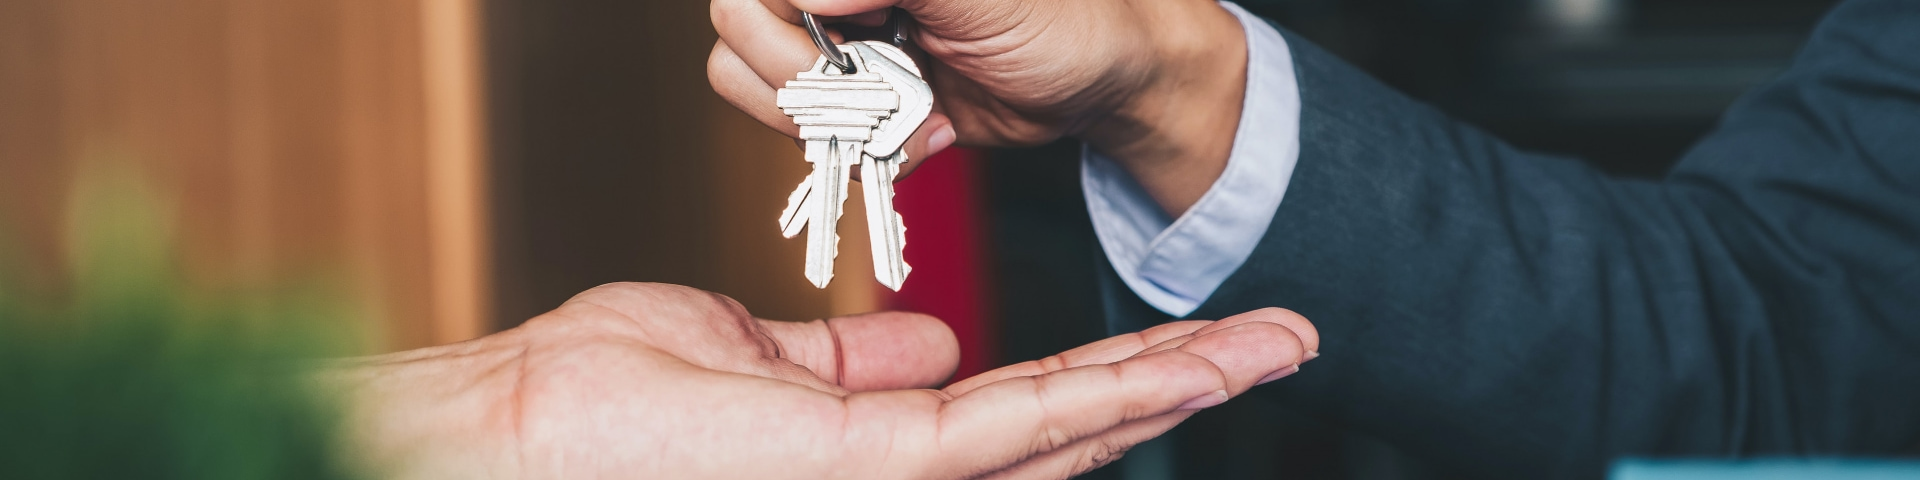 Real estate agent handing over keys to a home